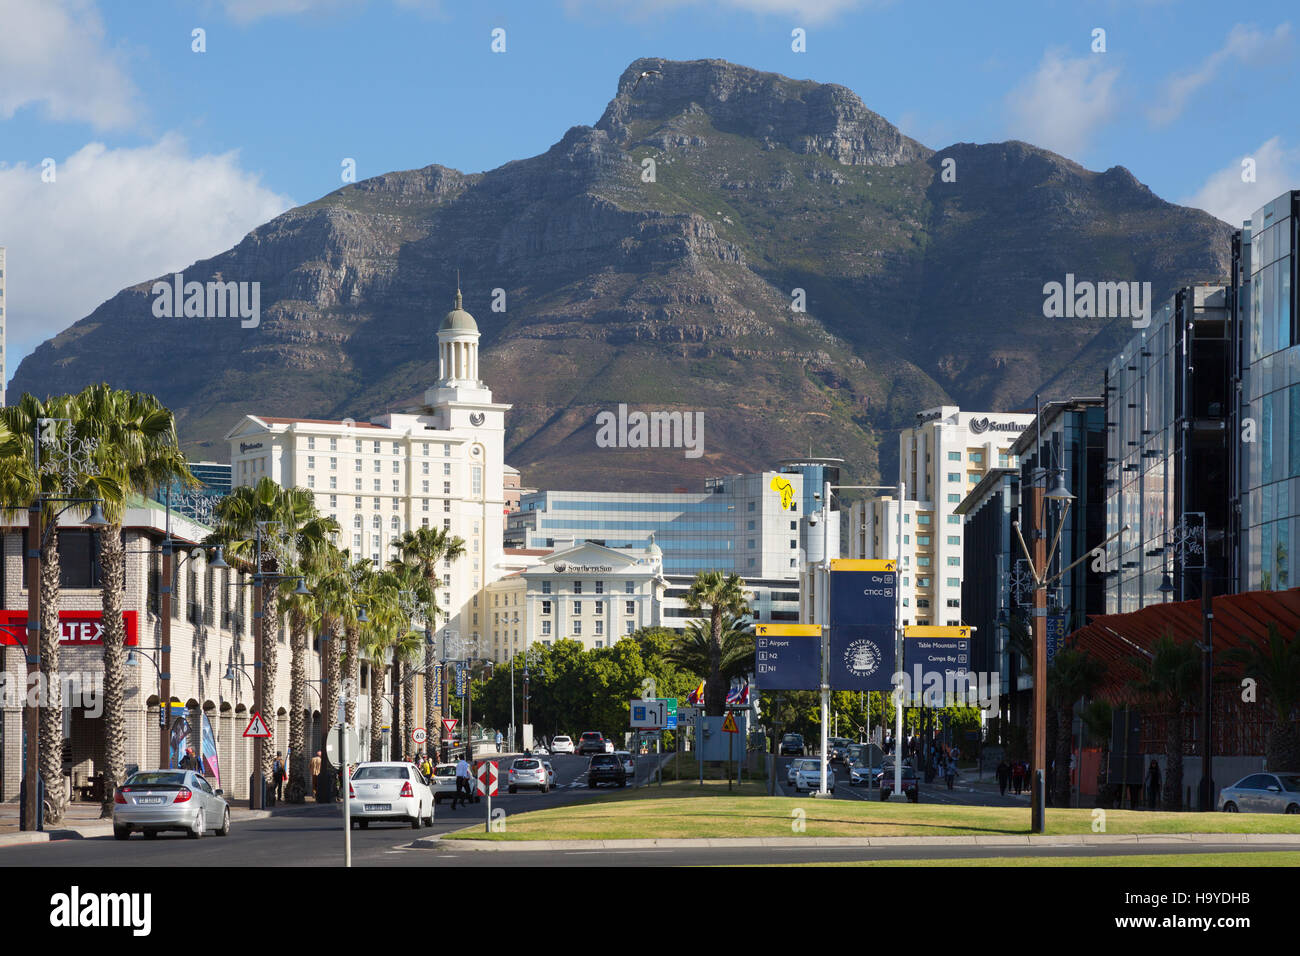 Street scene and Devil's Peak, Cape Town, South Africa - Stock Image